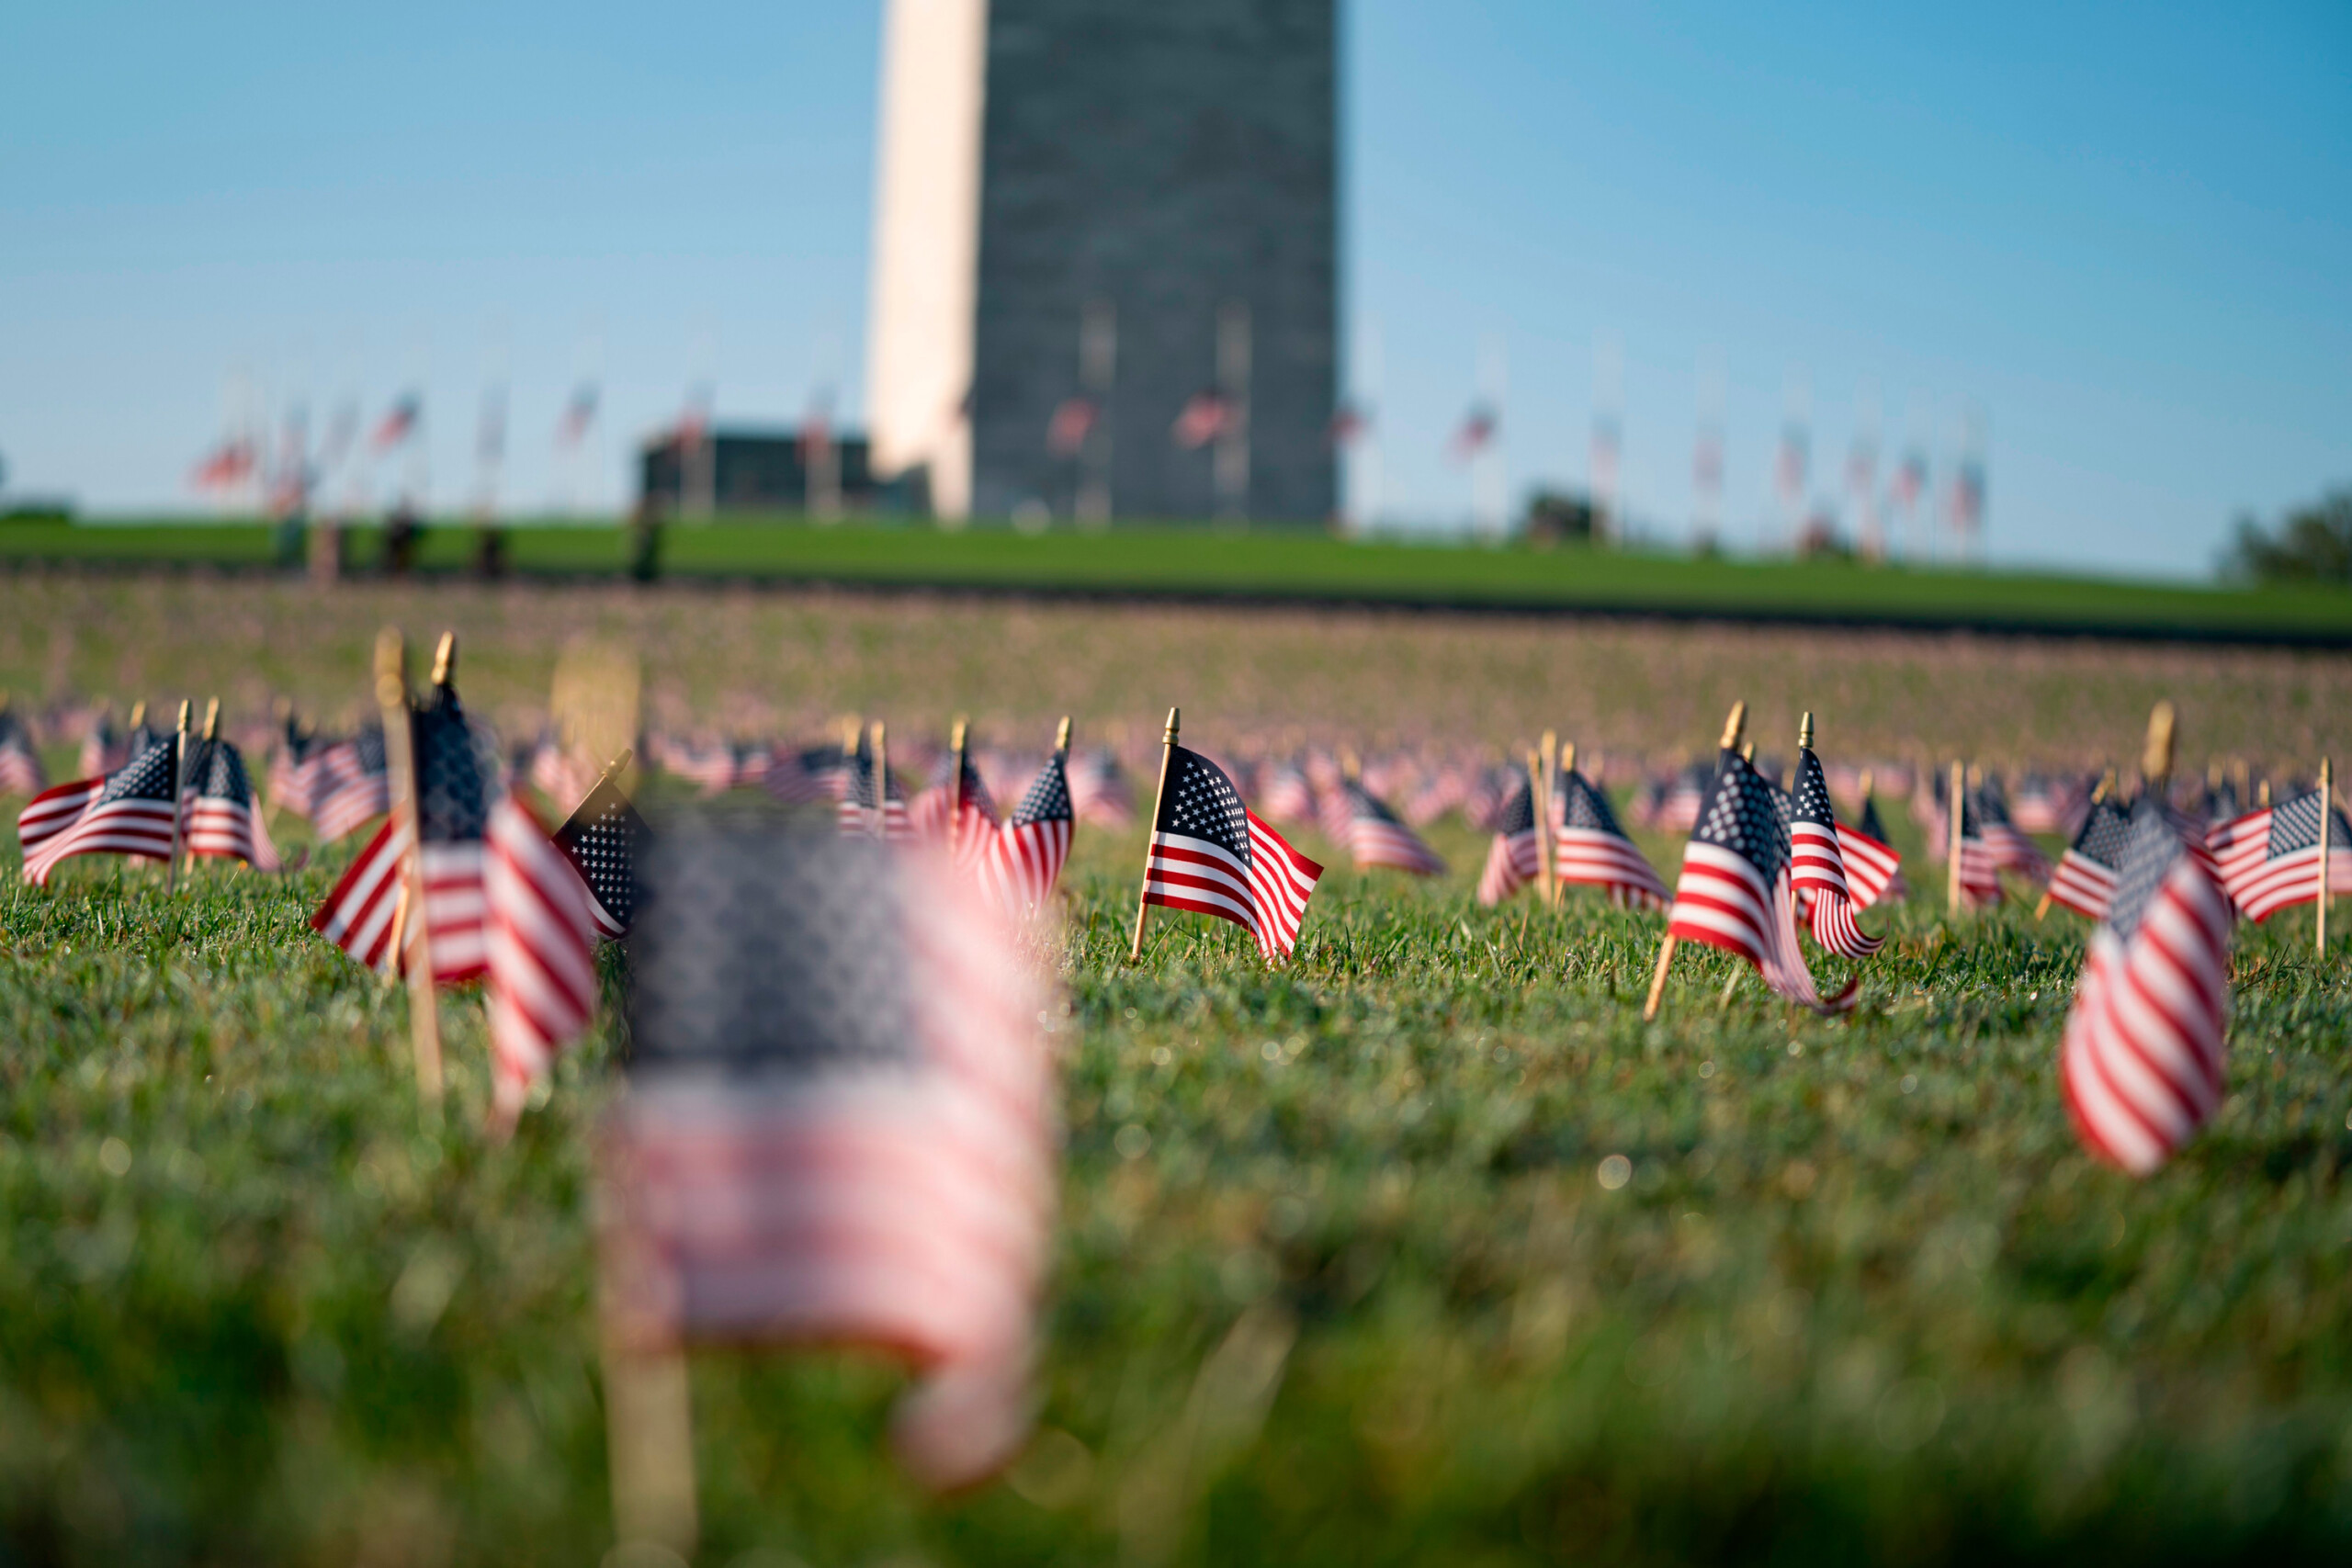 20,000 flags placed on National Mall to memorialize COVID-19 deaths in US - WISH-TV